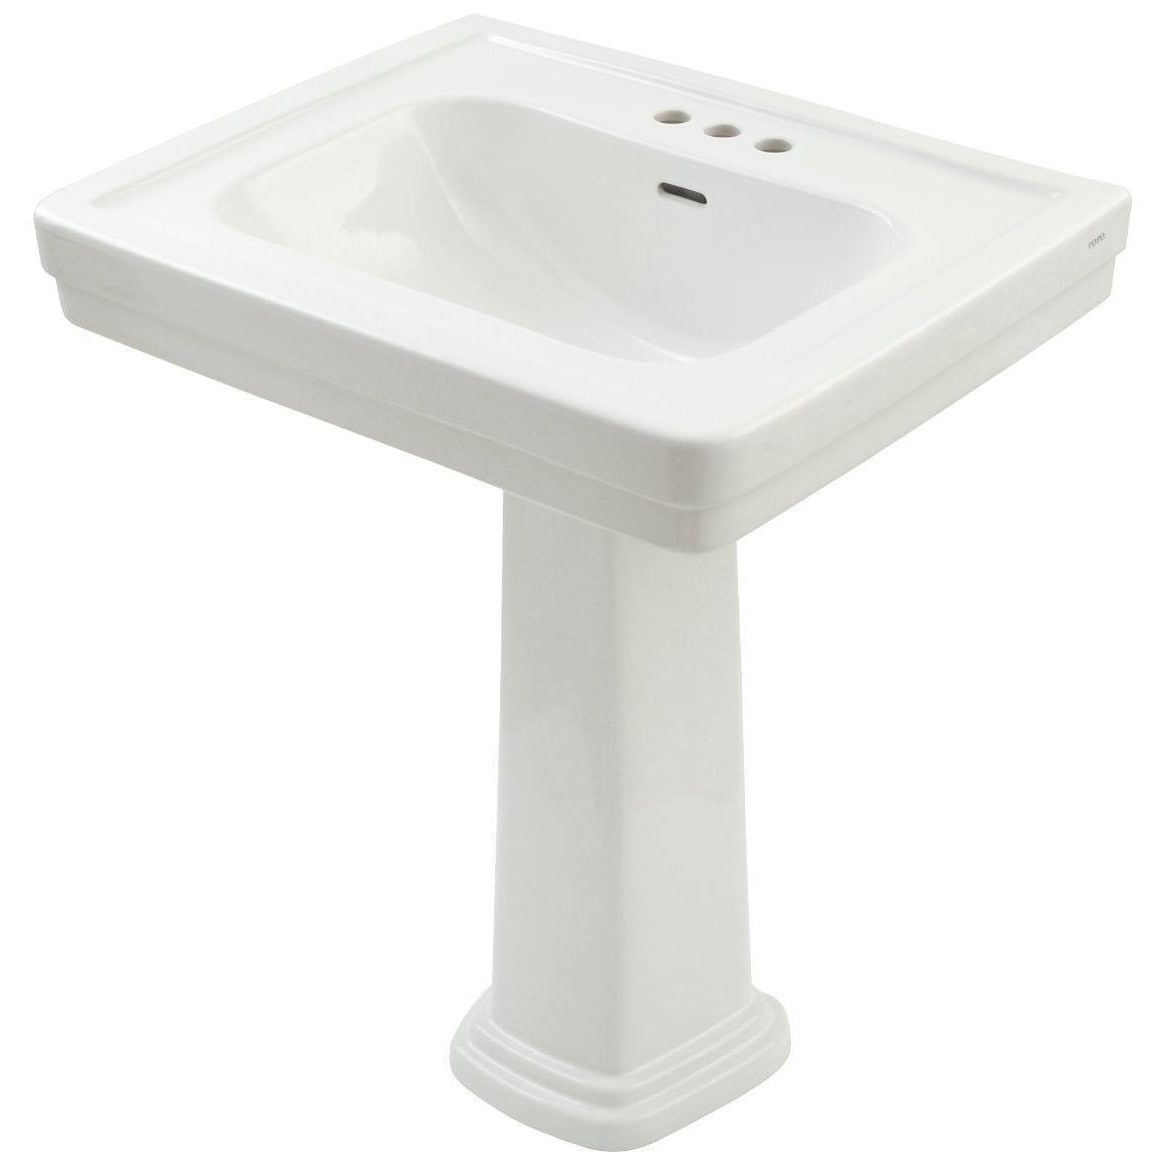 Toto Promenade Pedestal Vitreous China Bathroom Sink LPT530.4N#01 ...